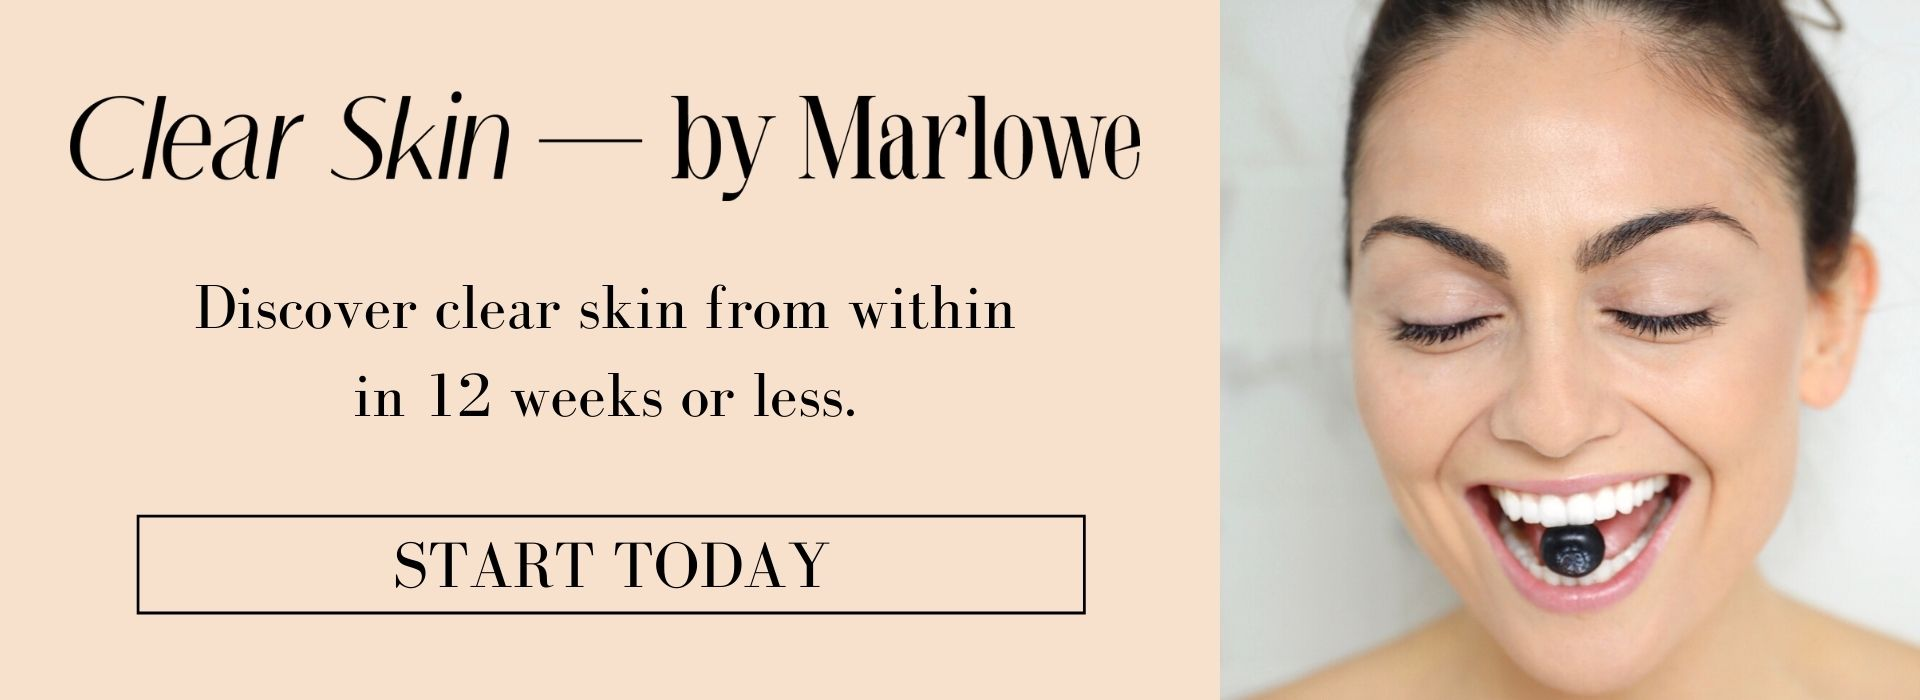 Top Foods For Clear Skin - Clear Skin By Marlowe